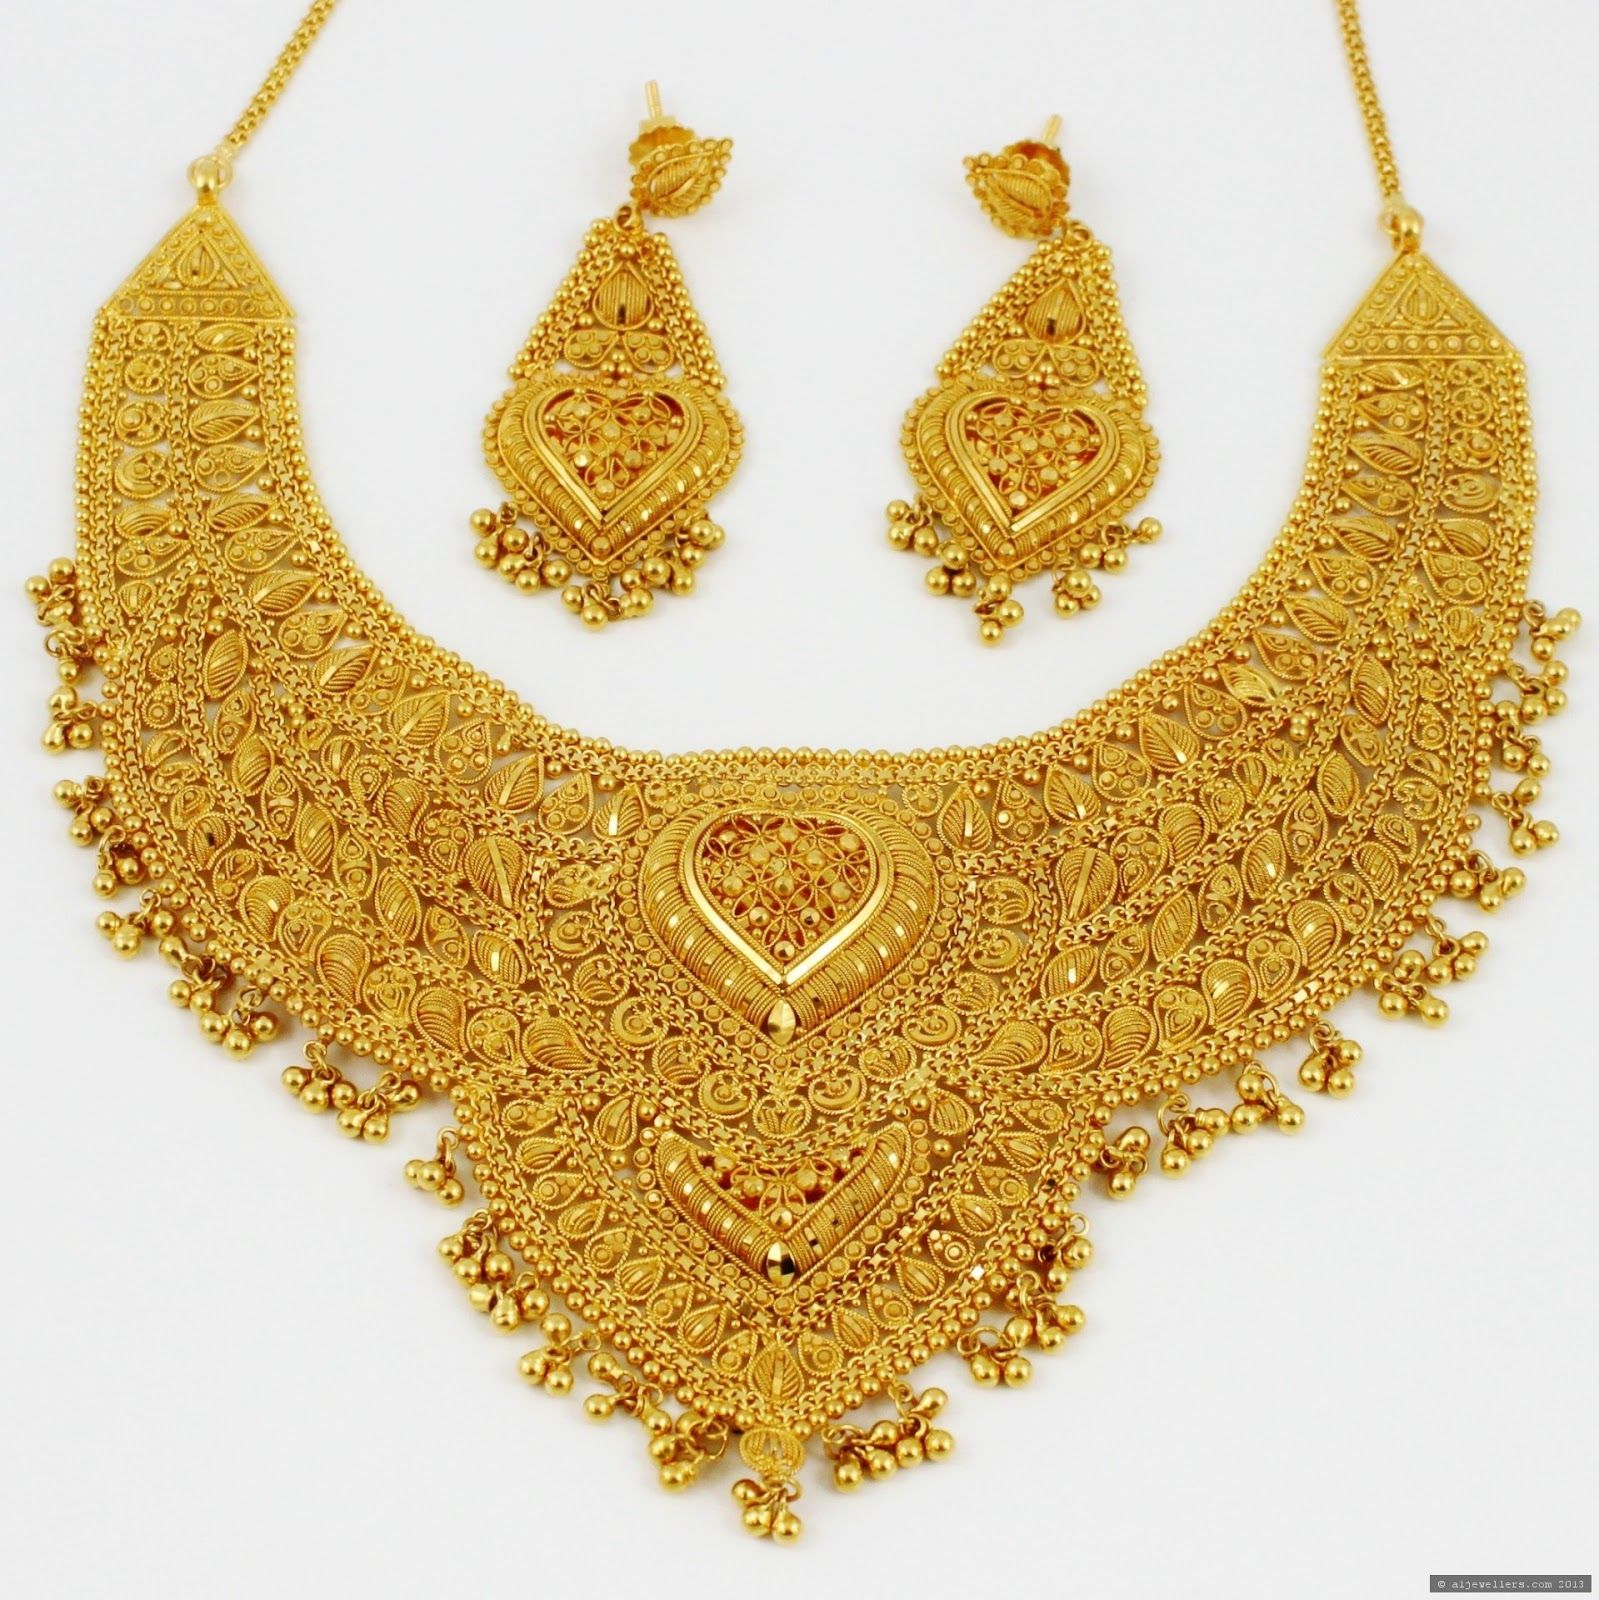 wallpaper gold of gram indian new photos necklace hd jewelry inspirational antique